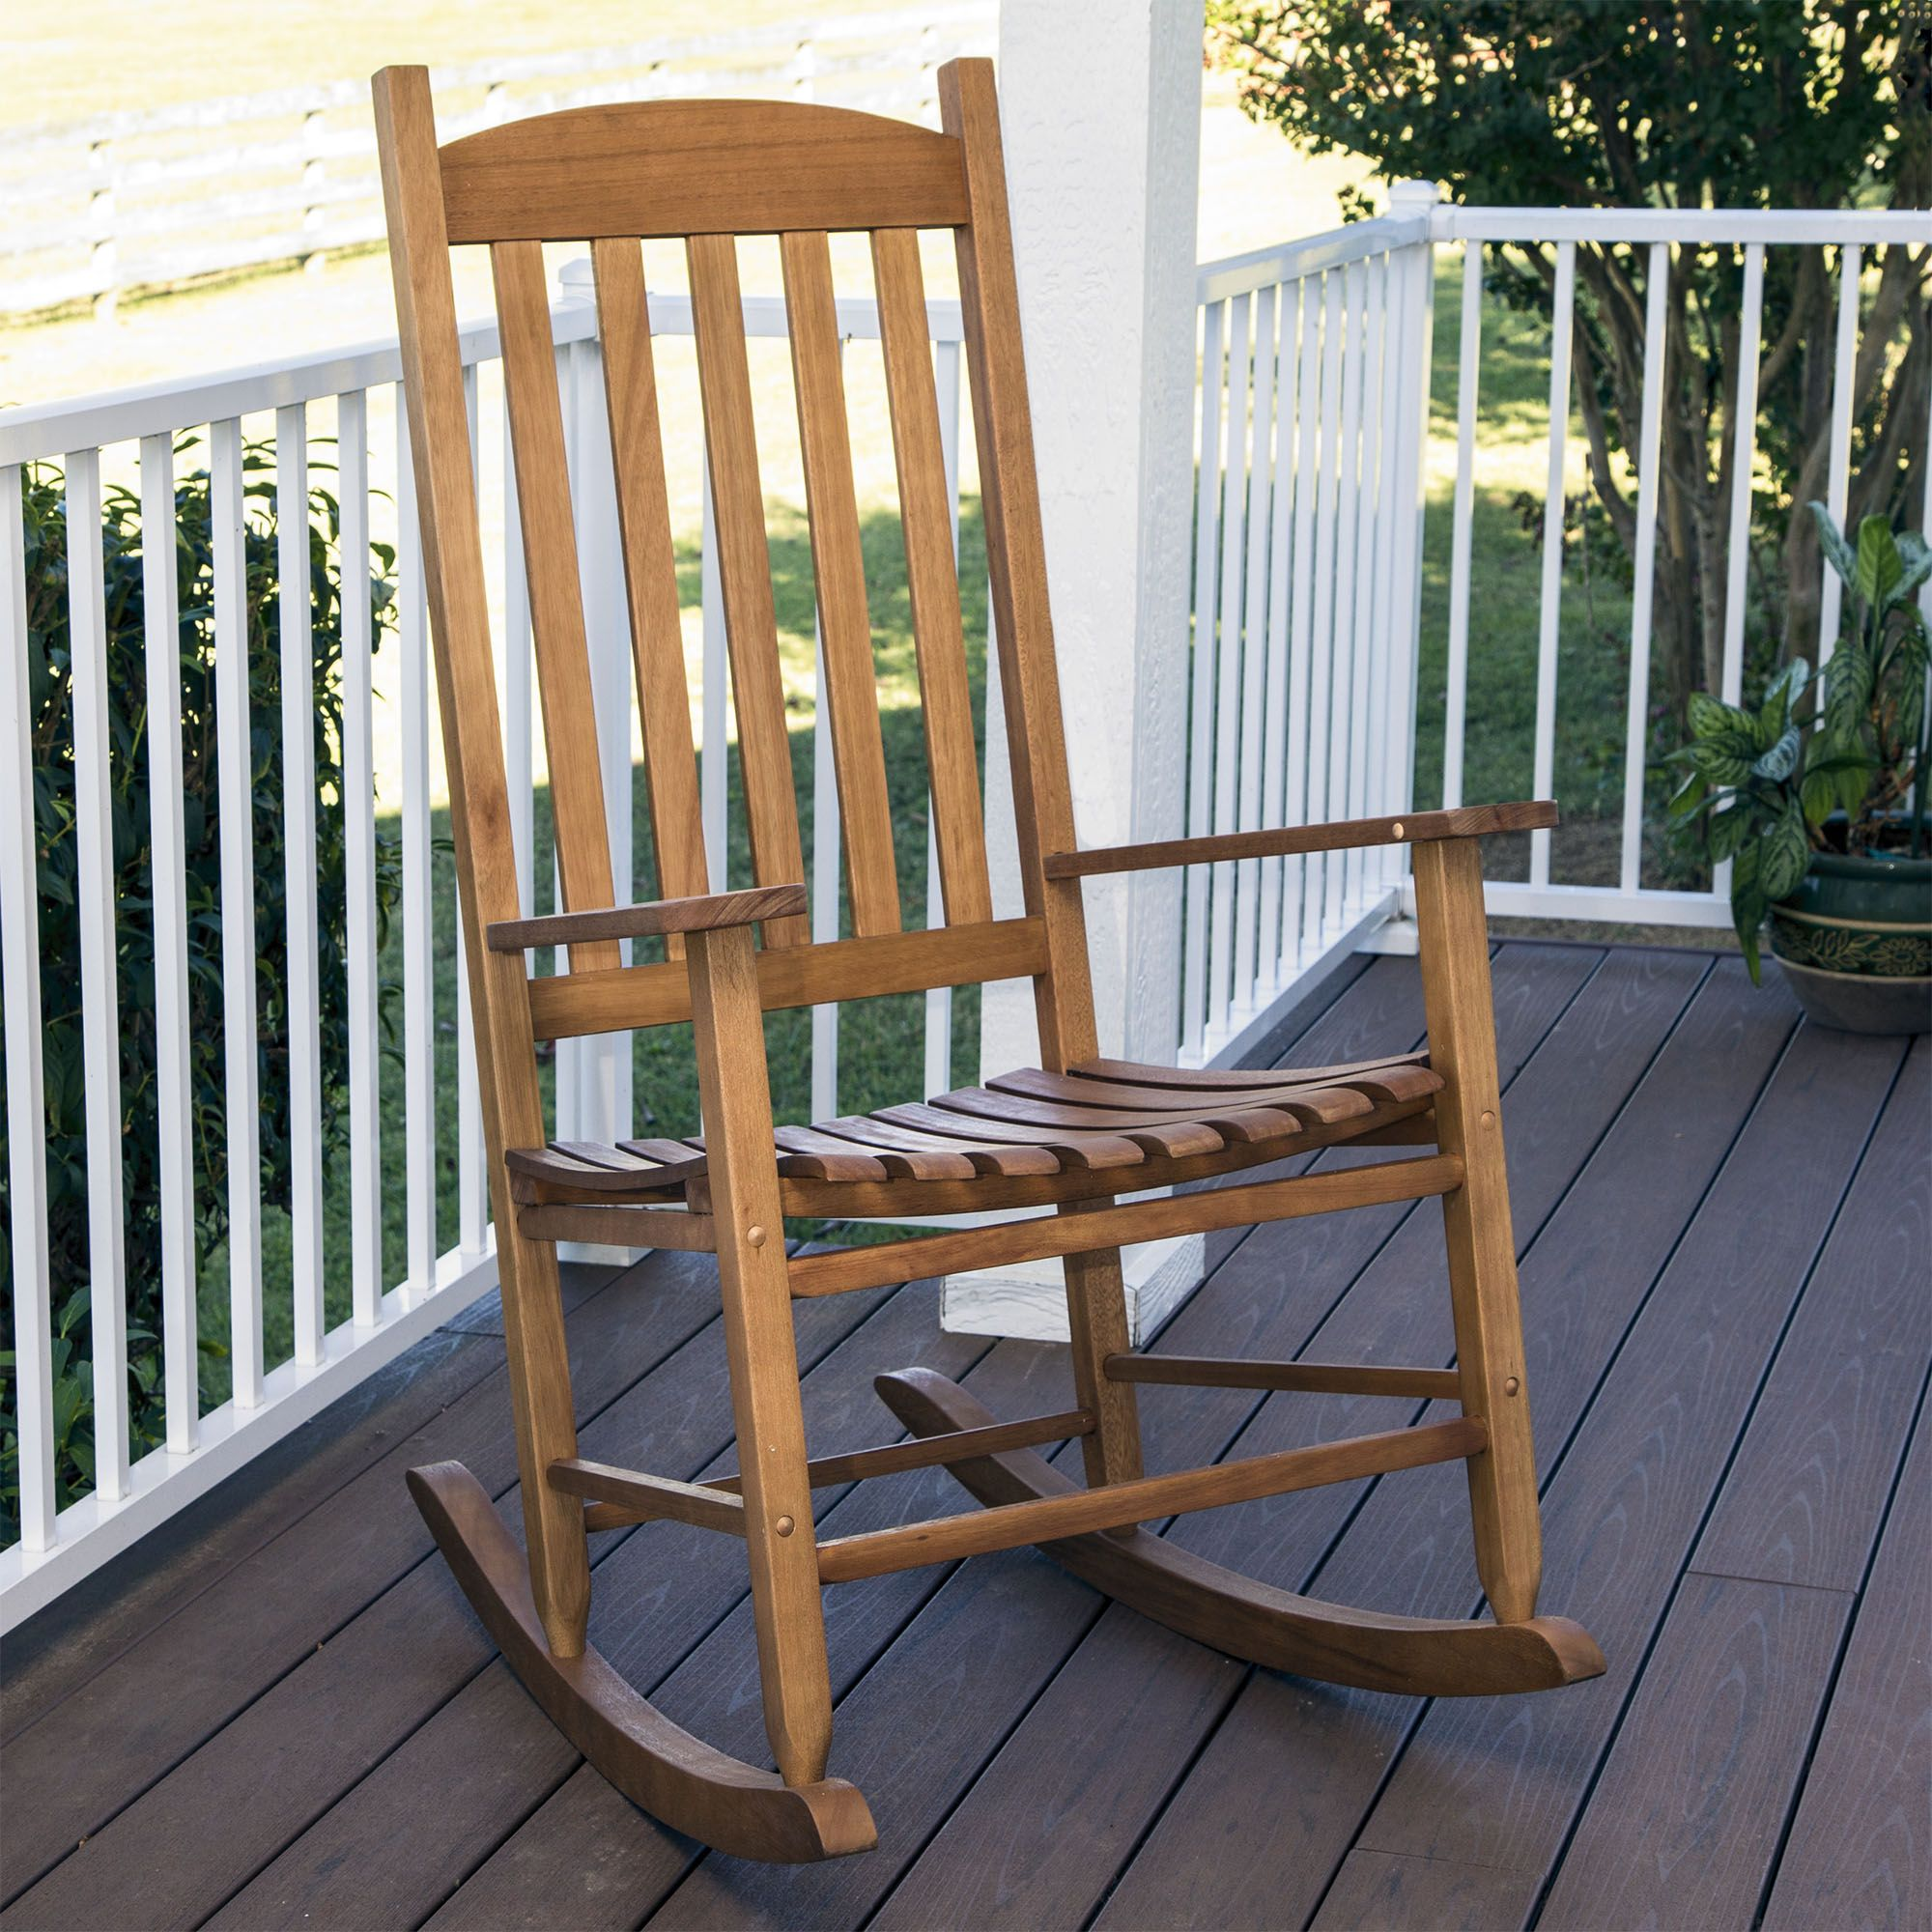 Fit For Everyday Life Thanks Rocking Chair Rocking